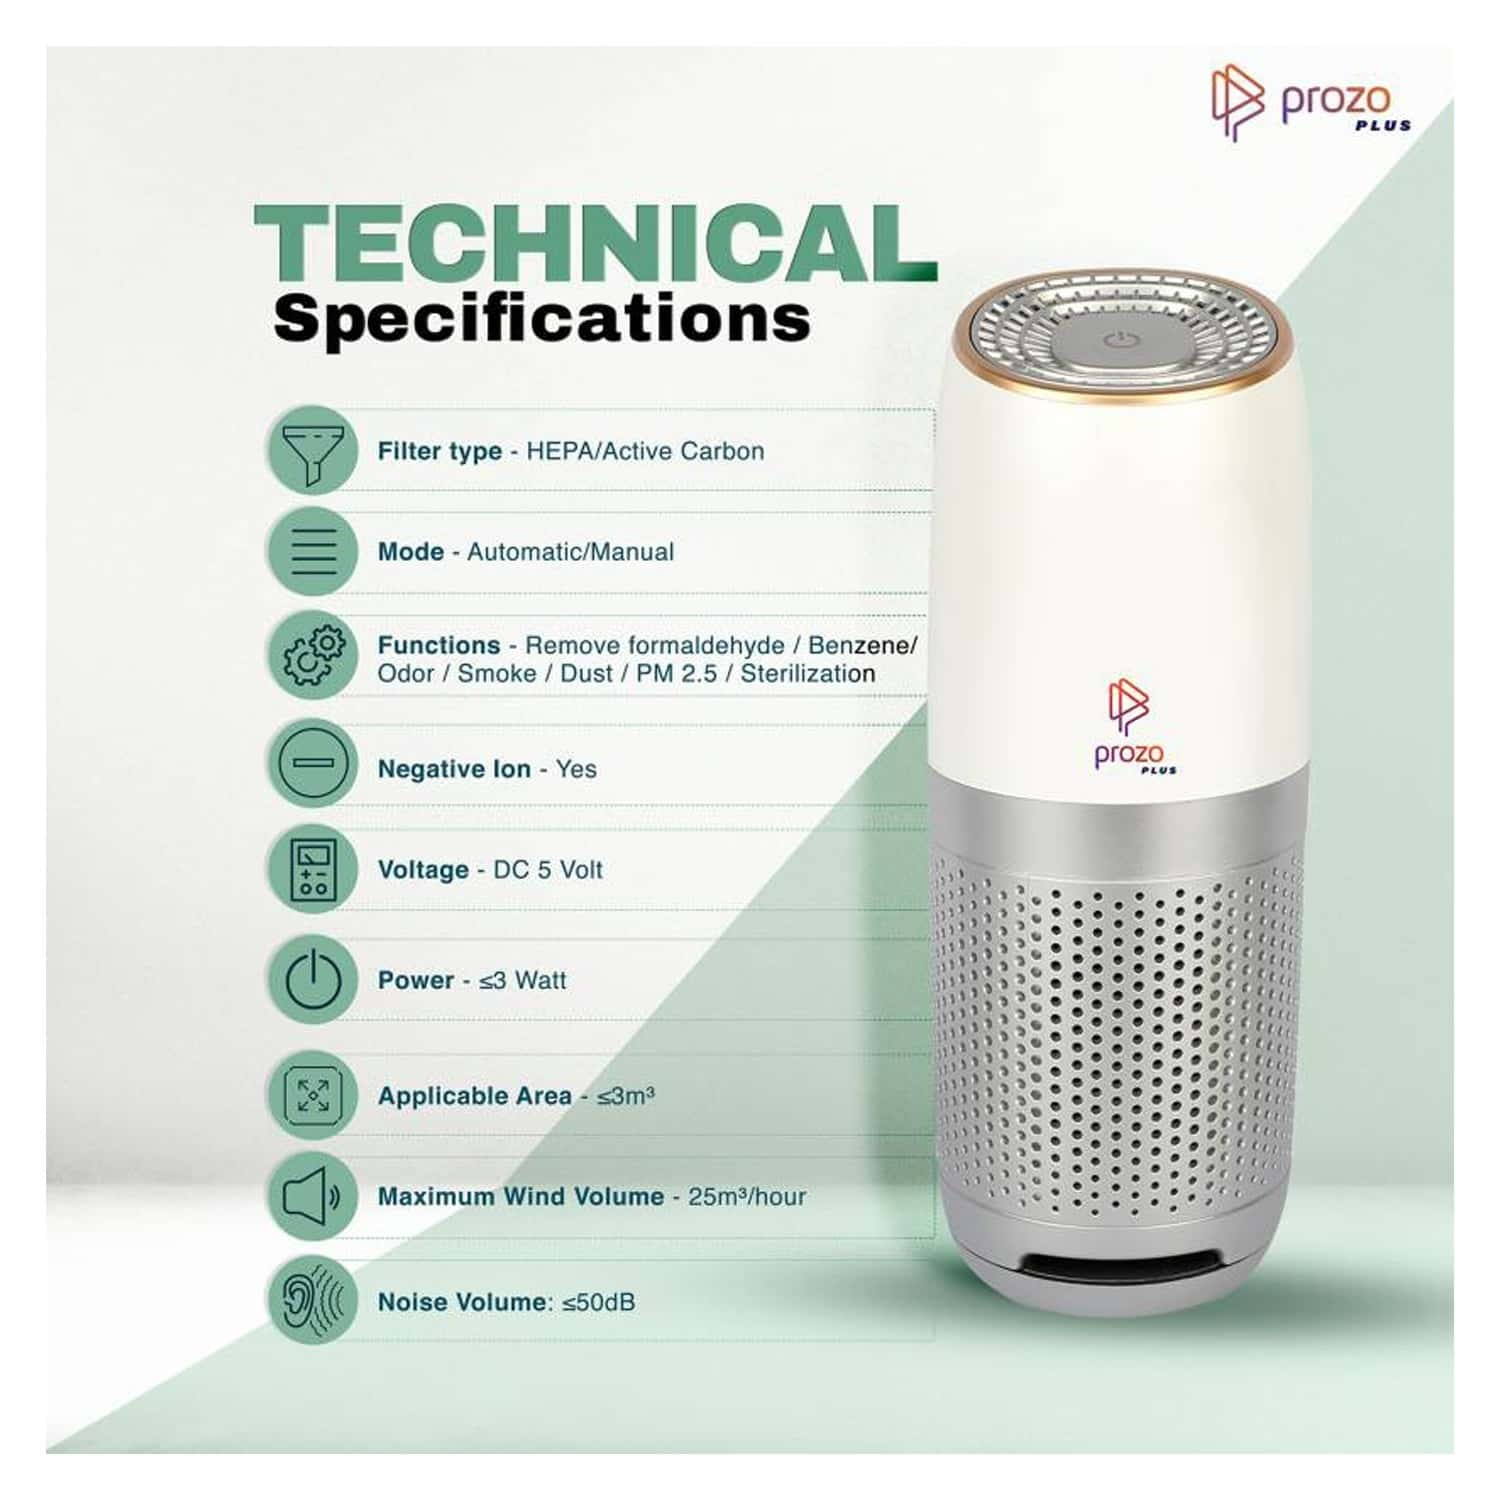 Prozo Plus Ce Certified, Hepa Filter, Portable Air Purifier For Car, Home And Office Working Station